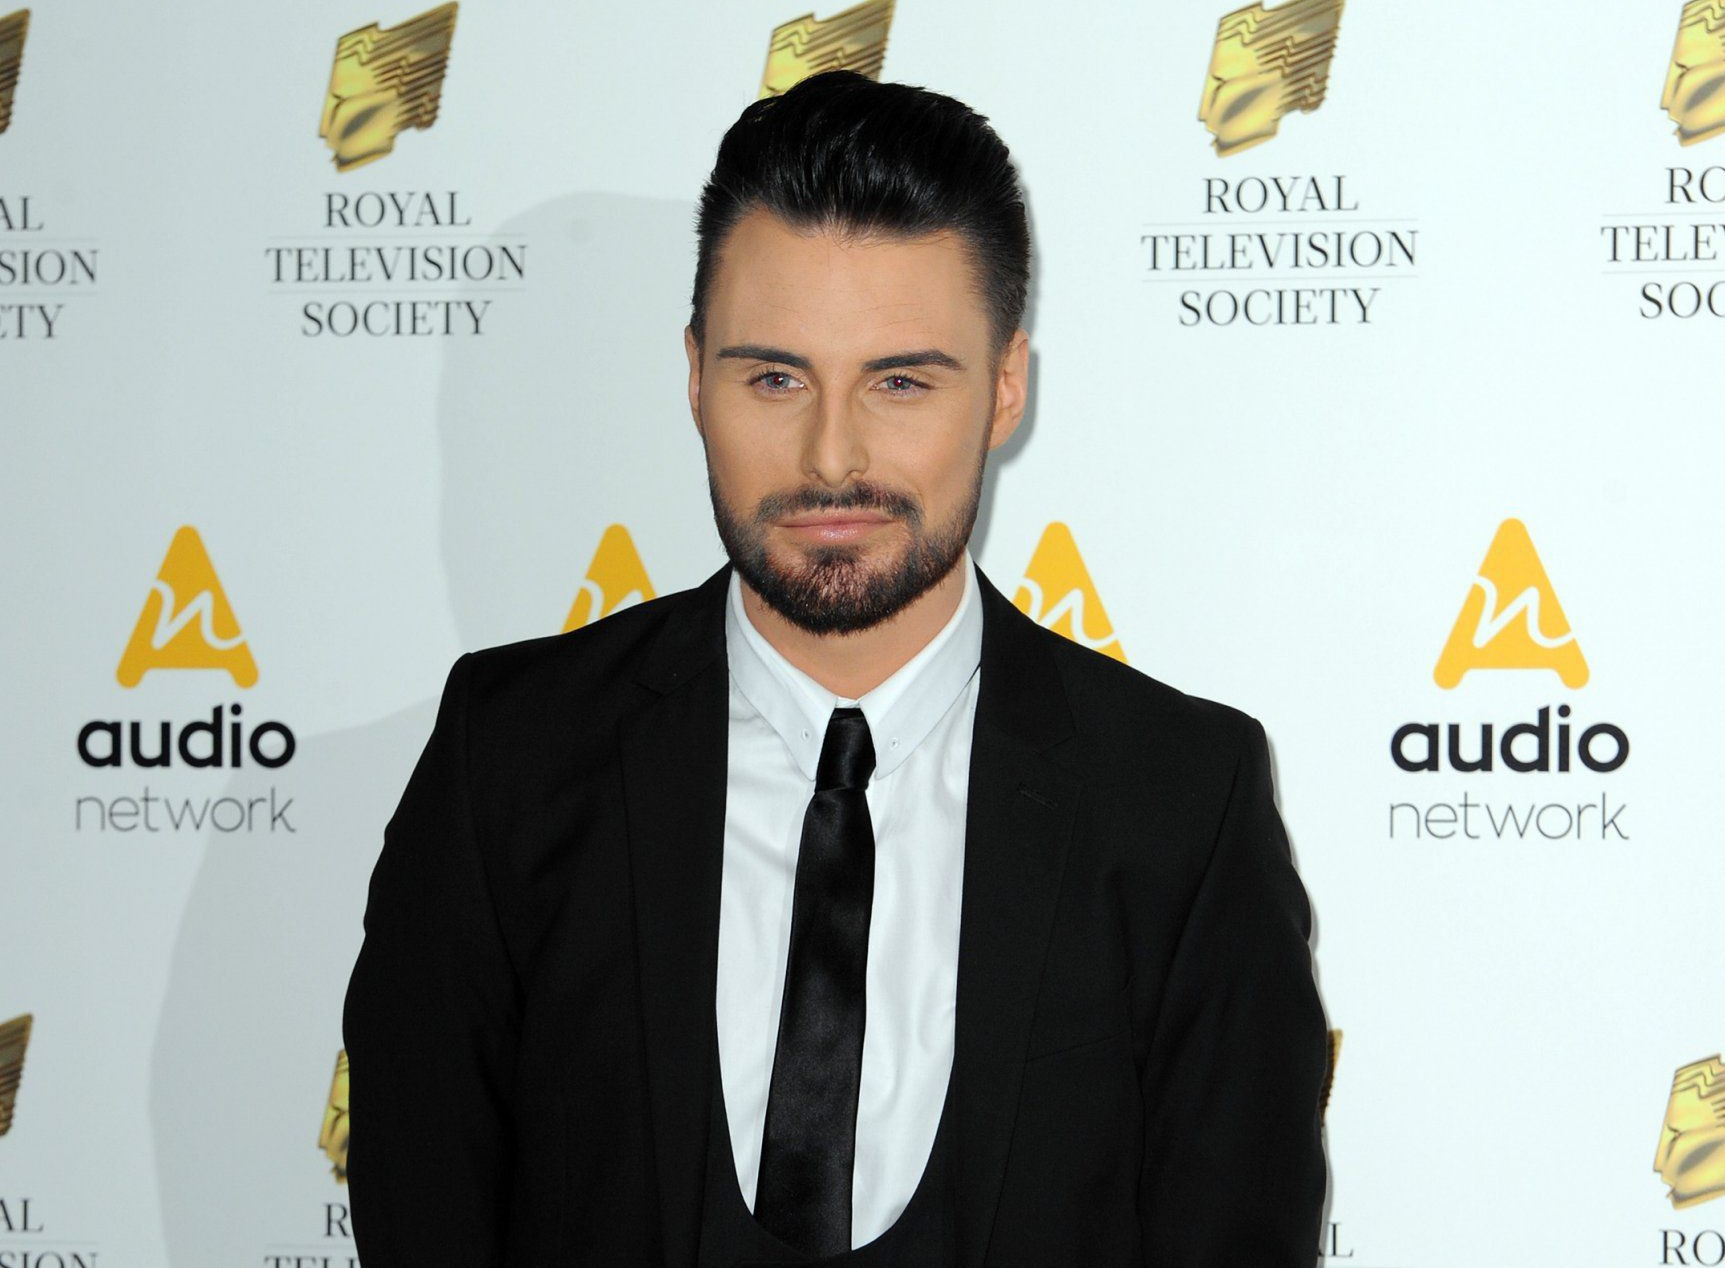 Rylan Clark-Neal jokes that he pulled the plug on This Morning after show goes off air for 15 minutes